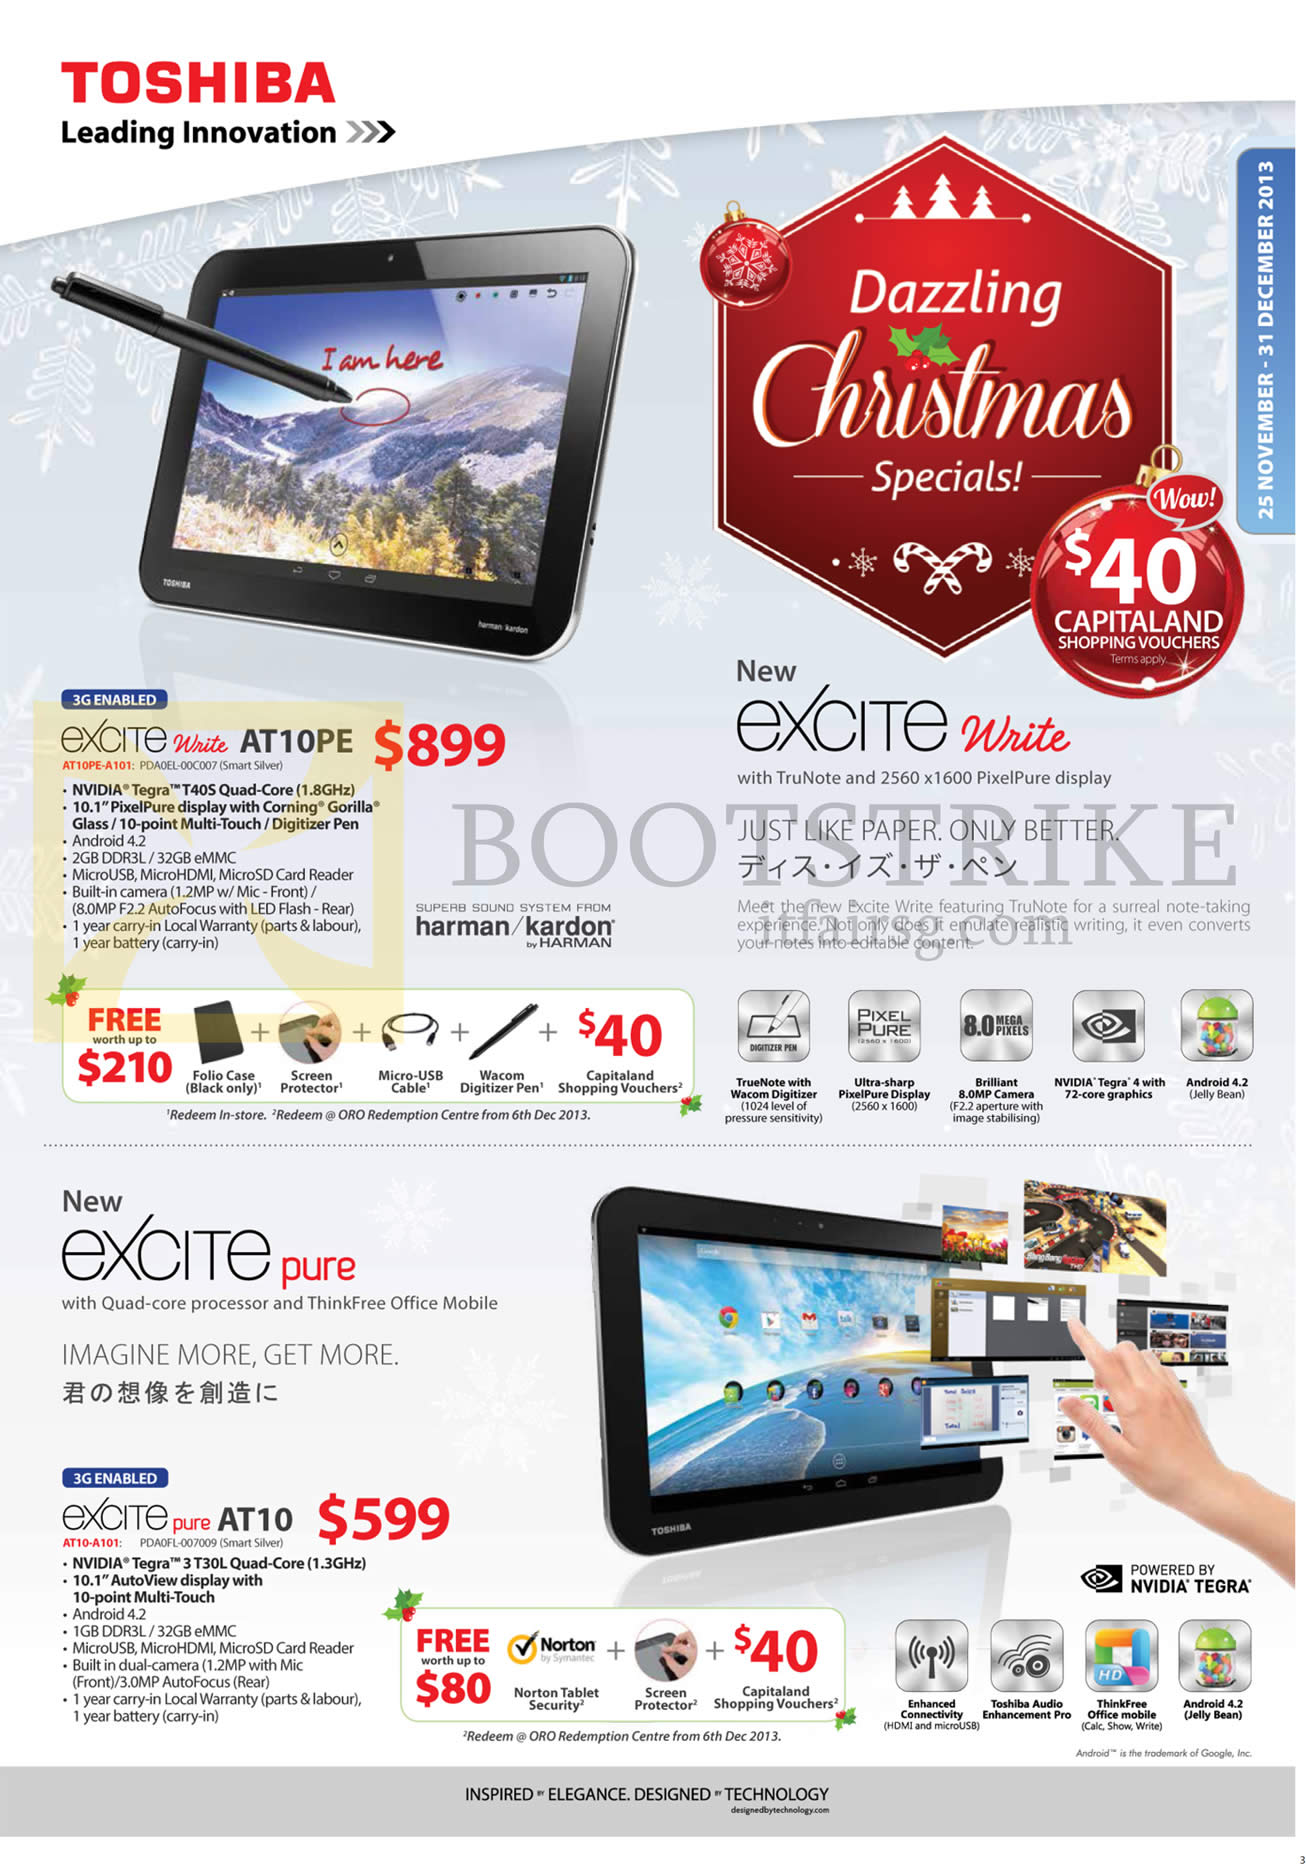 SITEX 2013 price list image brochure of Toshiba Tablets Excite Write AT10PE, Excite Pure AT10